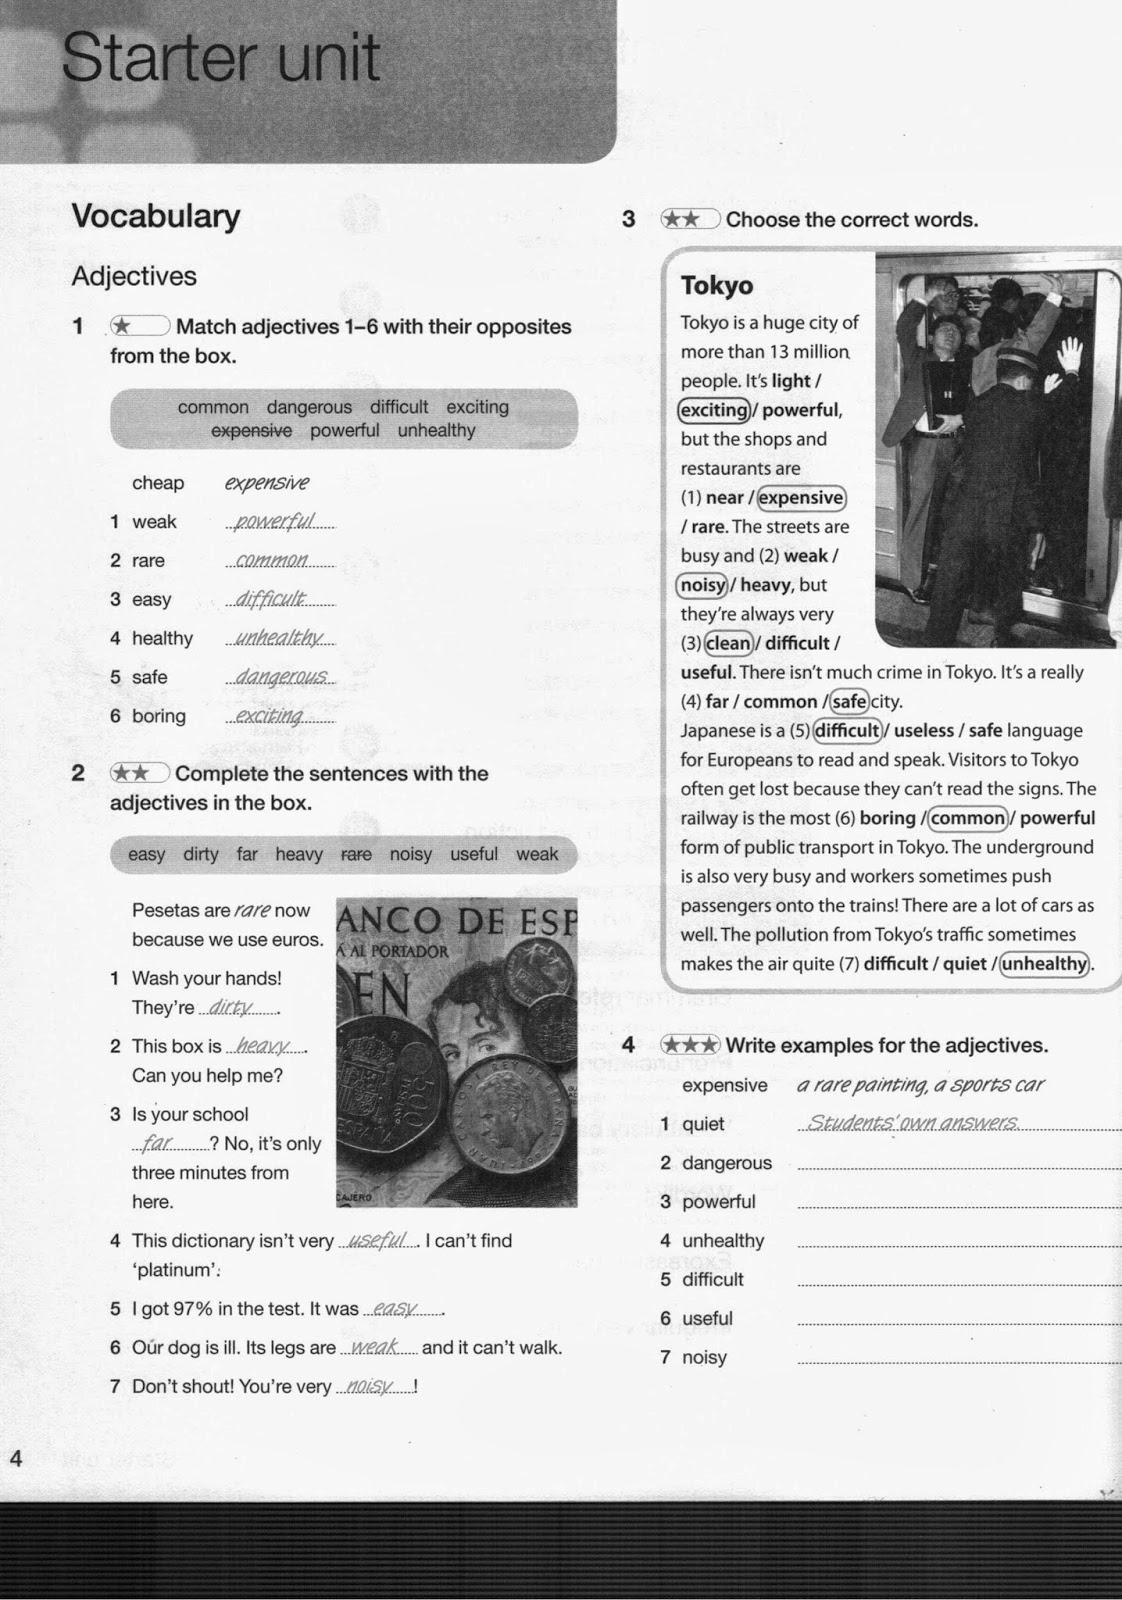 Rest And Rice Answer Key To Starter Unit Workbook Exercises For Self Correction